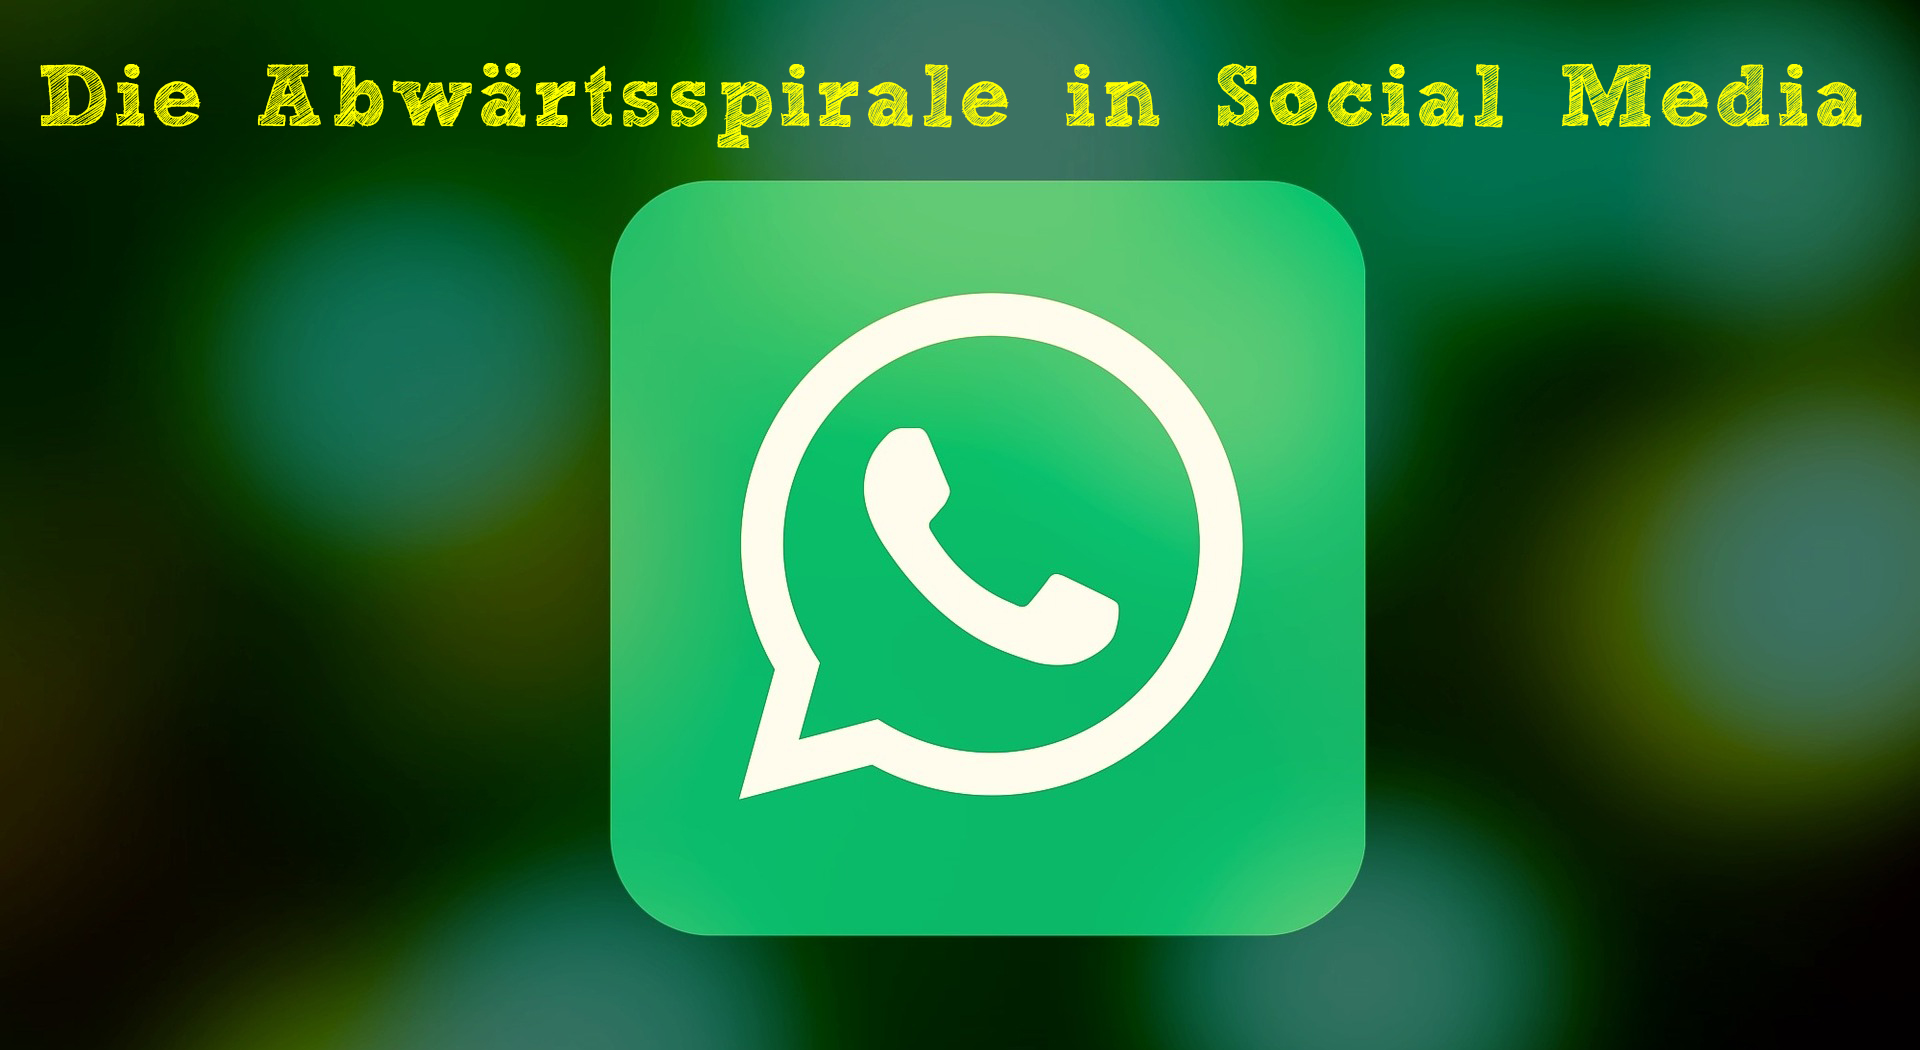 Die Abwärtsspirale in Social Media